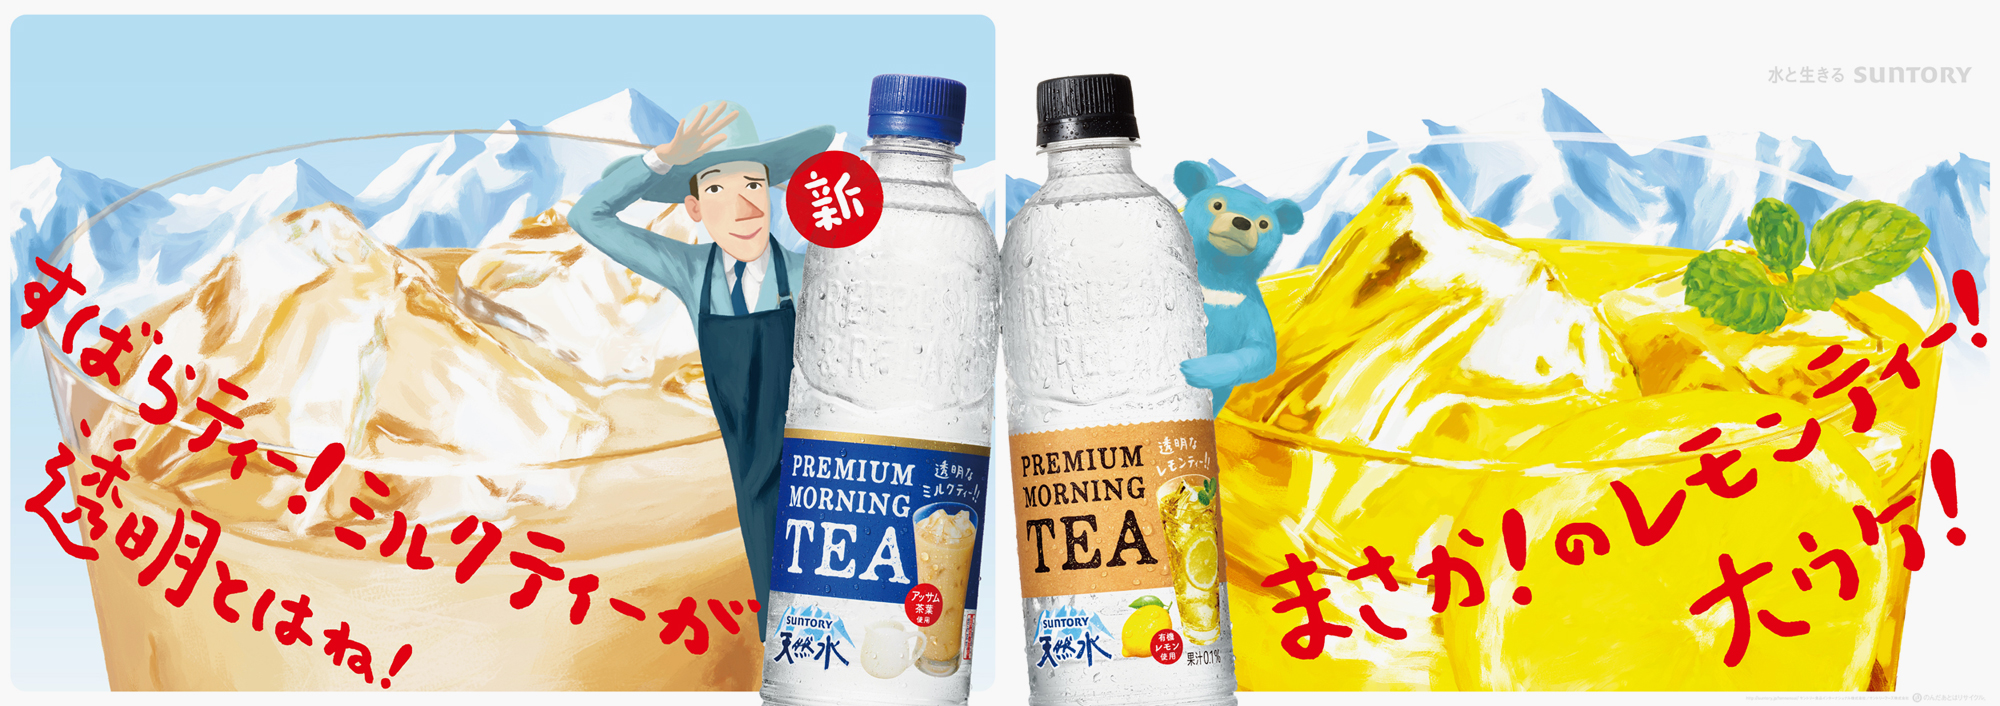 Image result for suntory premium morning tea